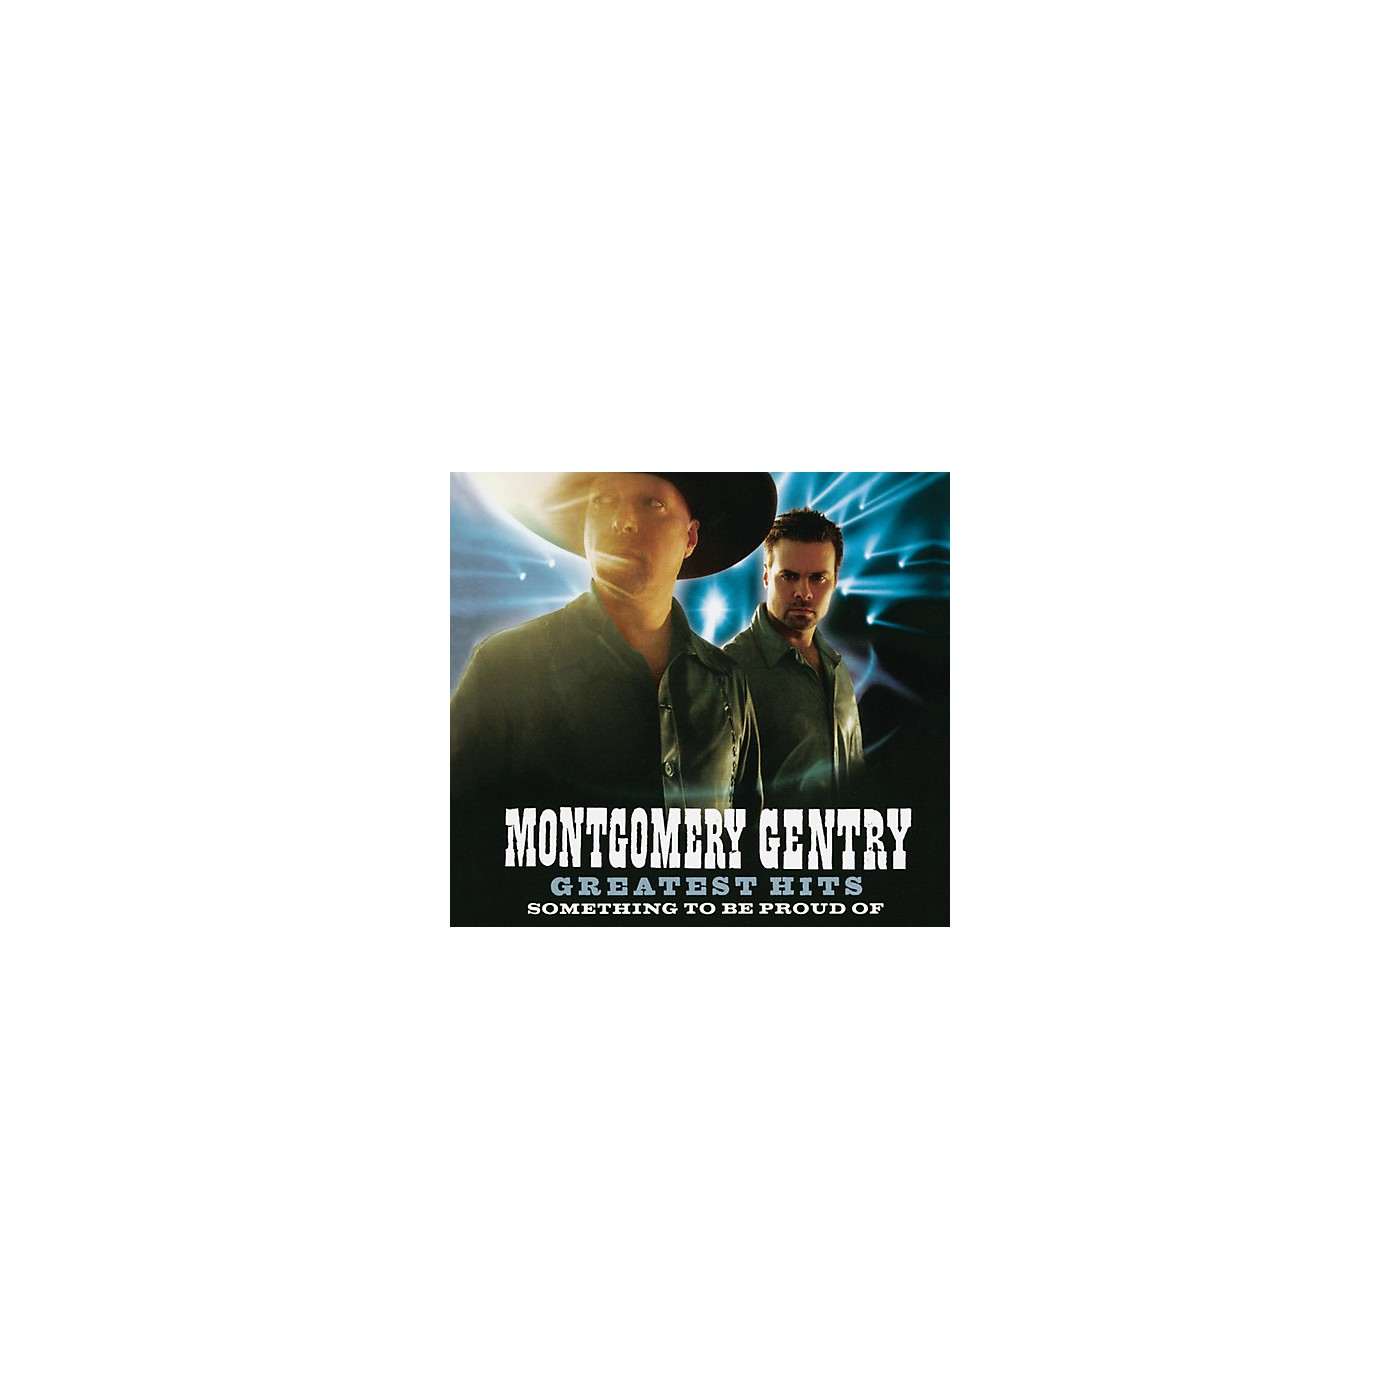 Alliance Montgomery Gentry - Greatest Hits (CD) thumbnail